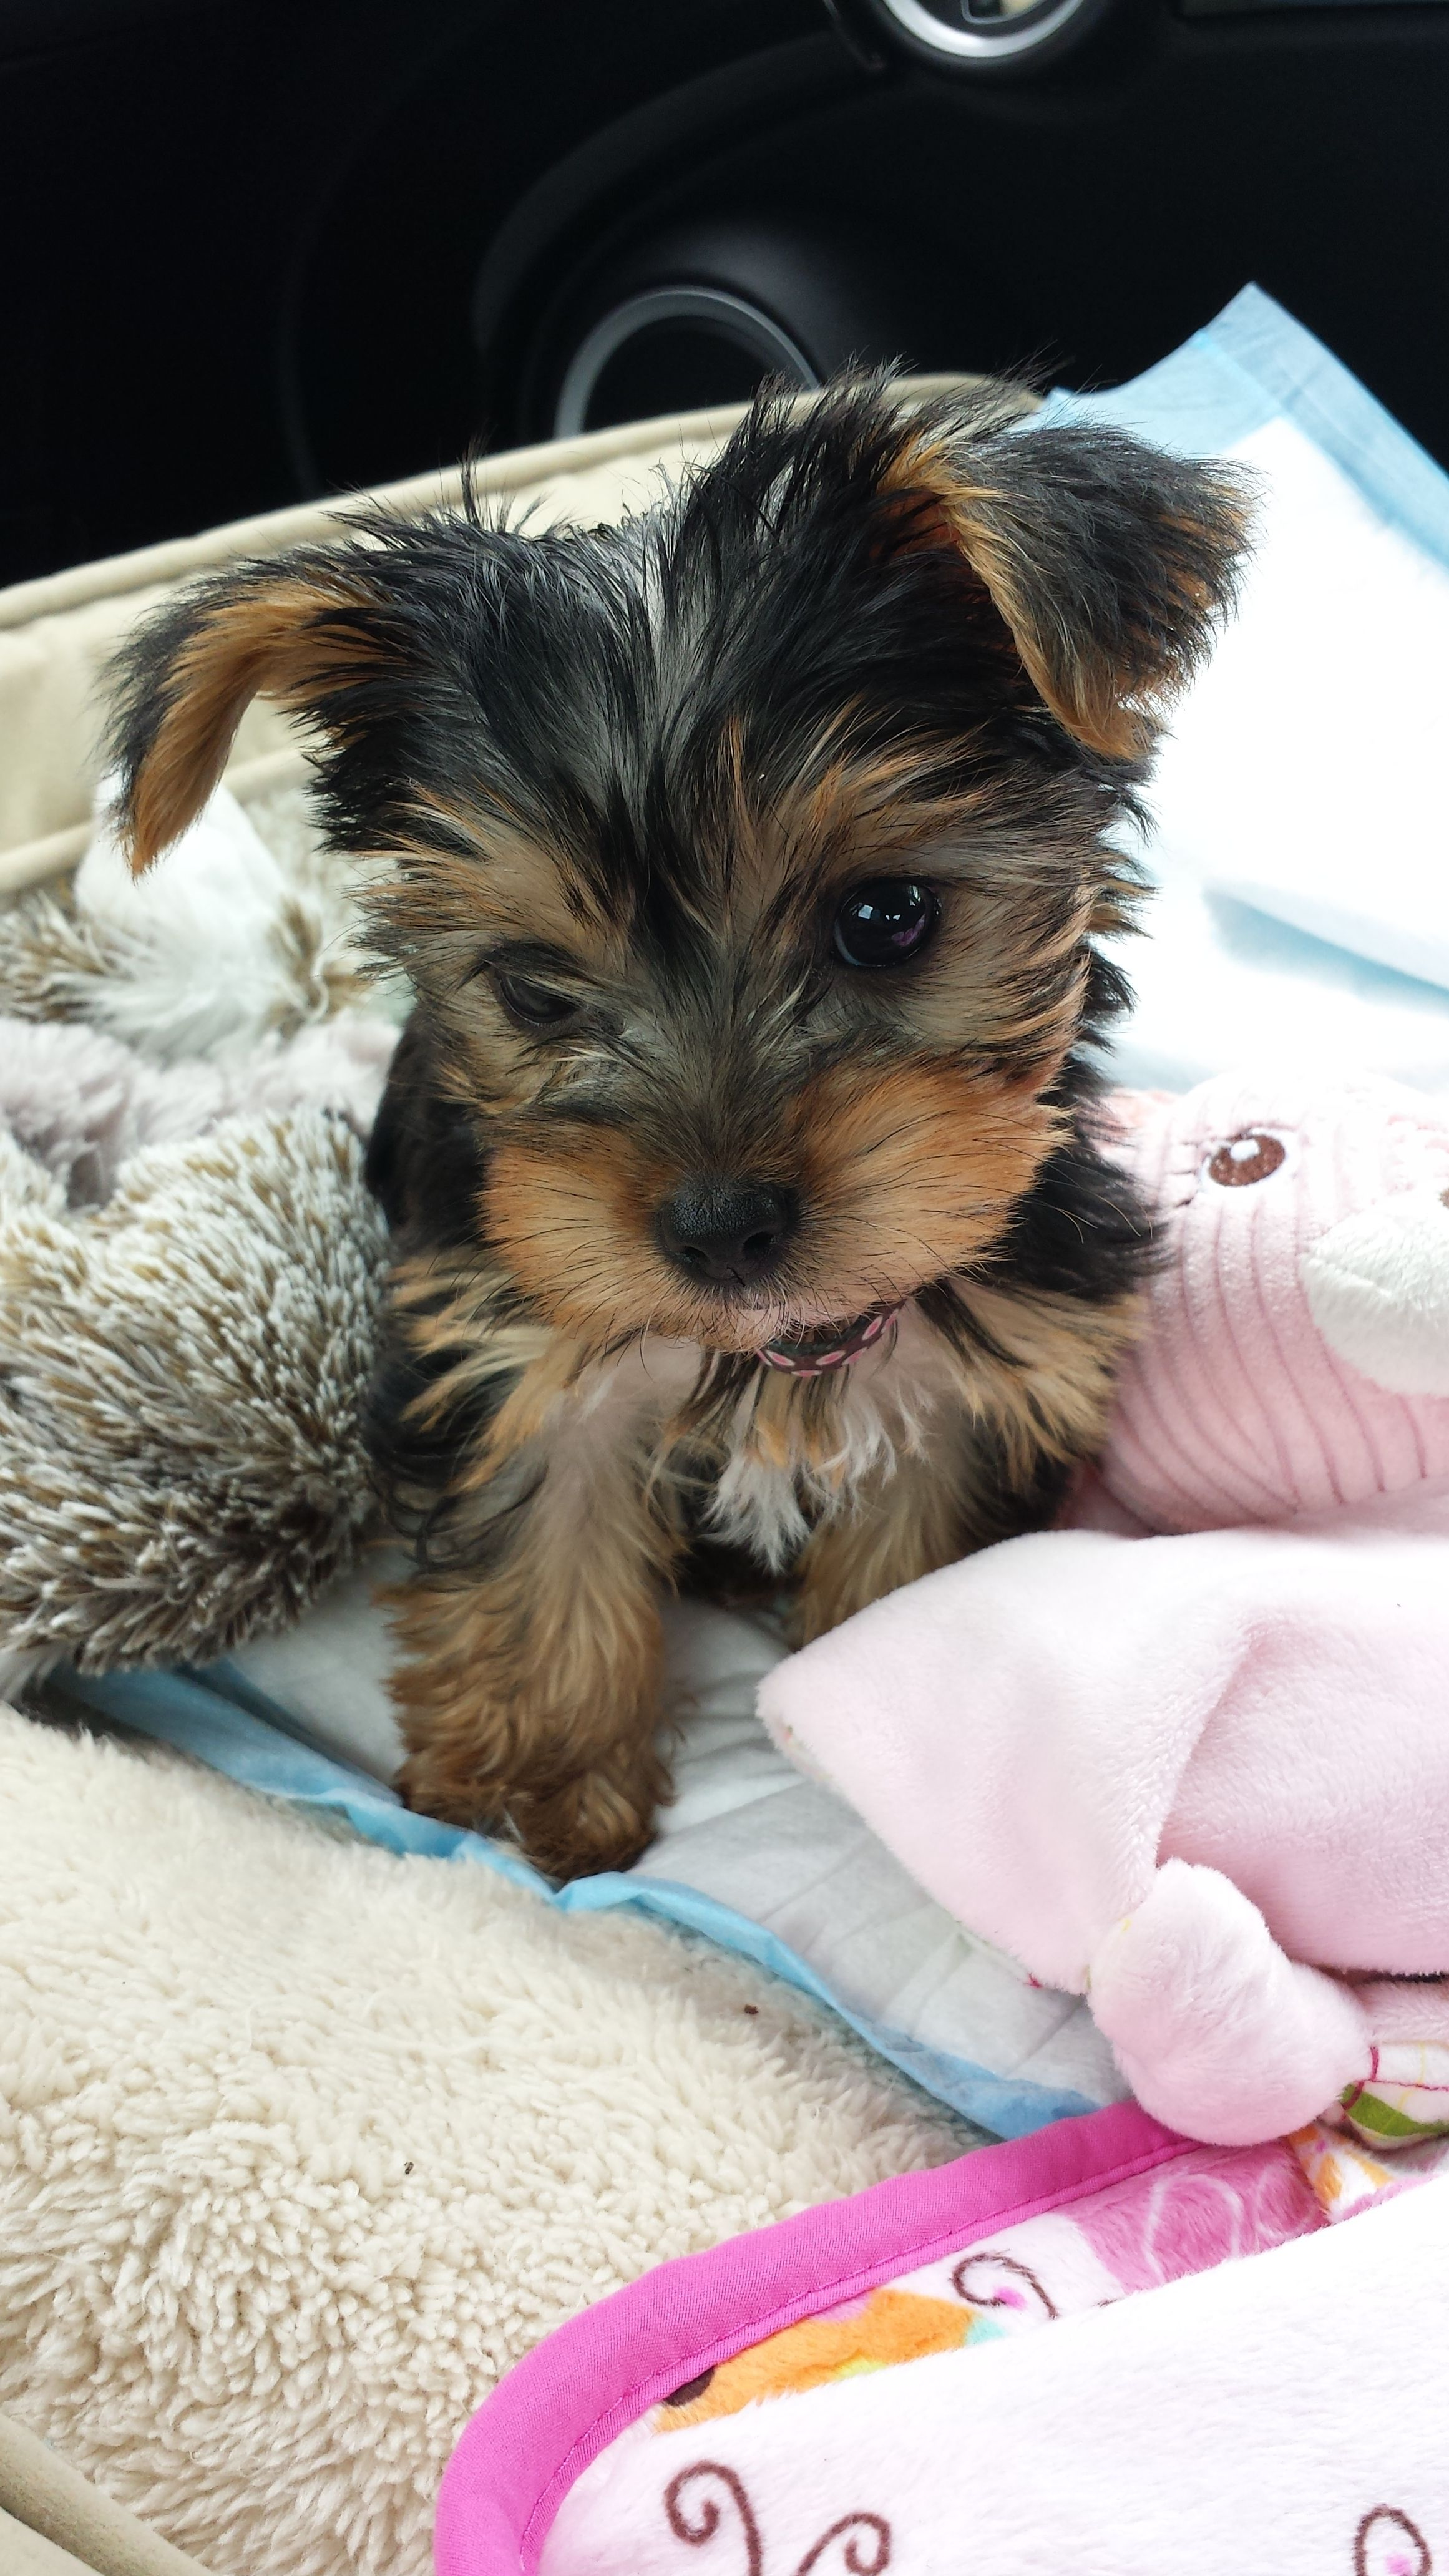 Cute Pictures Mostly Yorkie S Other Dogs Cats Image By Elizabeth Meechan Yorkie Puppies Animals